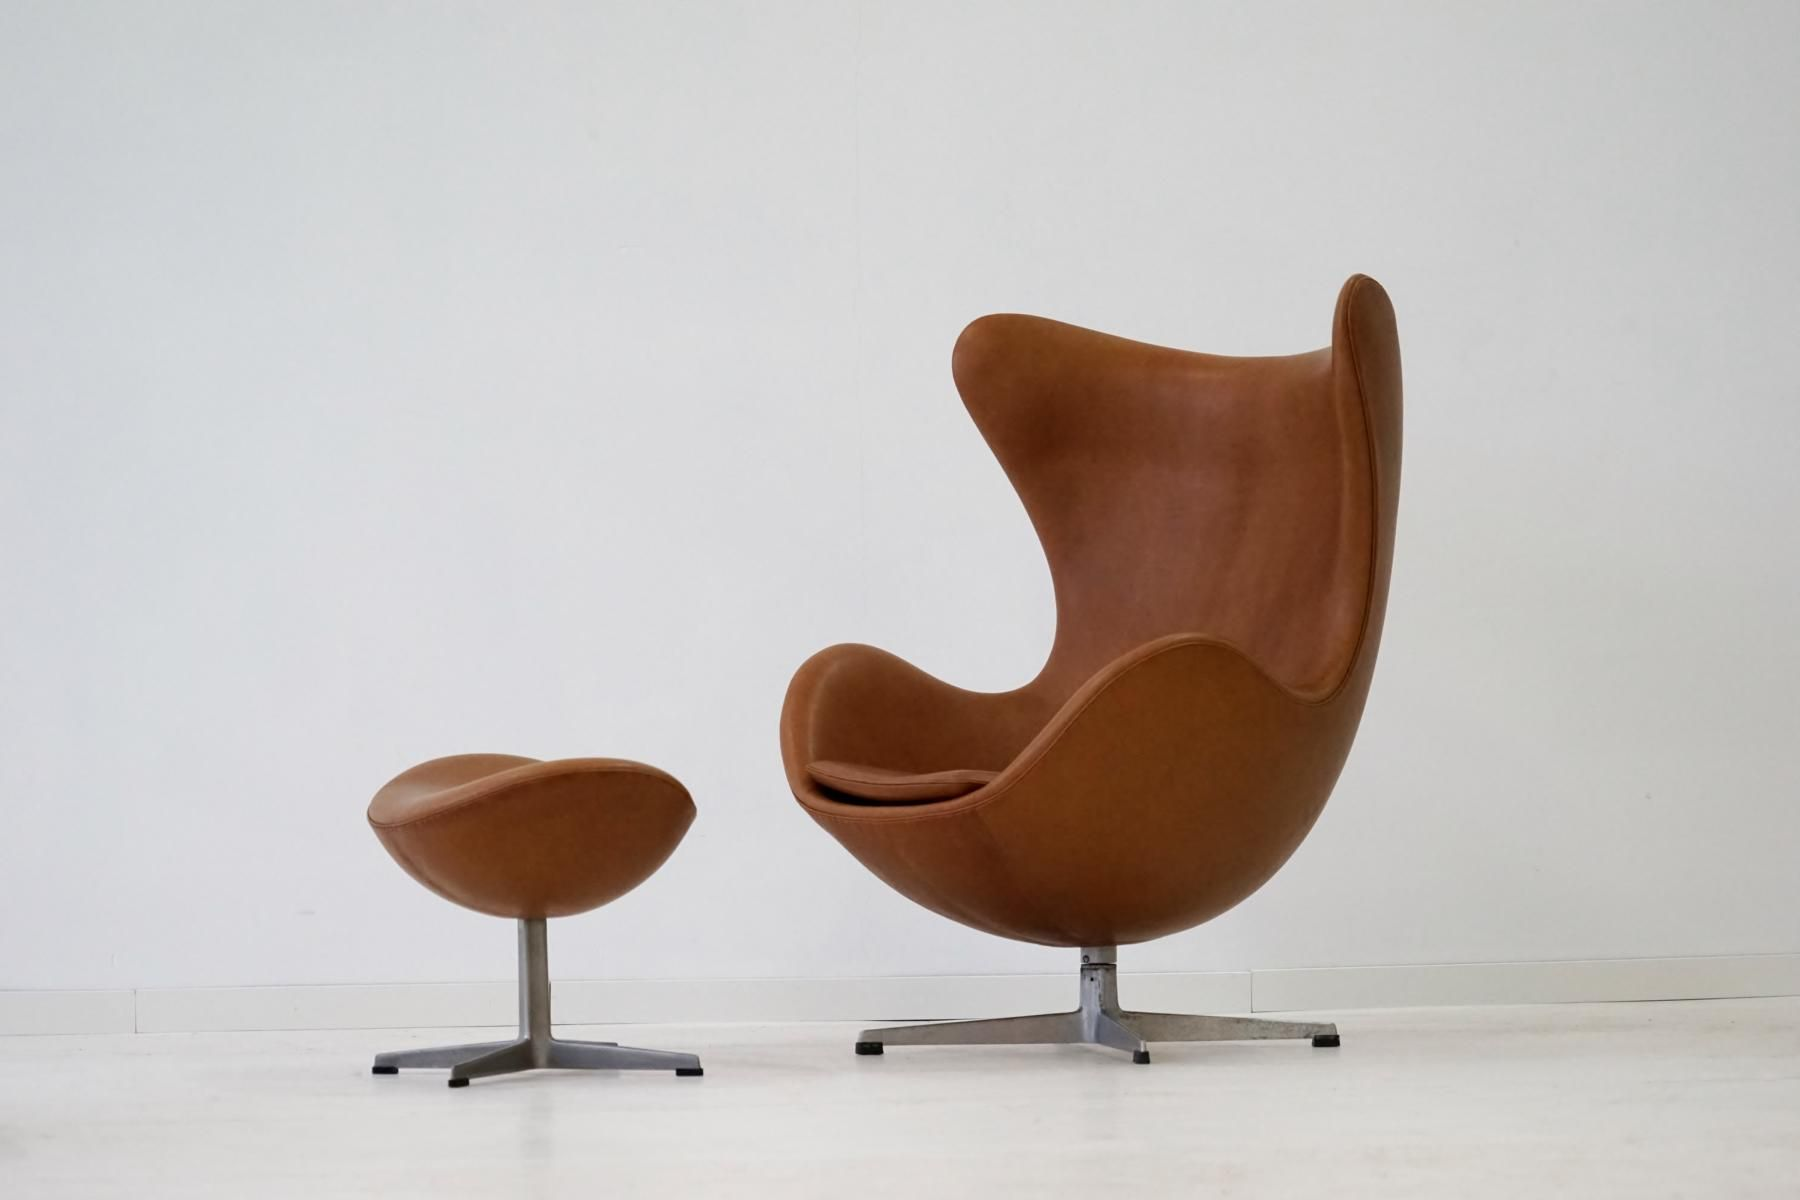 egg sessel ottomane aus leder von arne jacobsen f r fritz hansen 1960er bei pamono kaufen. Black Bedroom Furniture Sets. Home Design Ideas